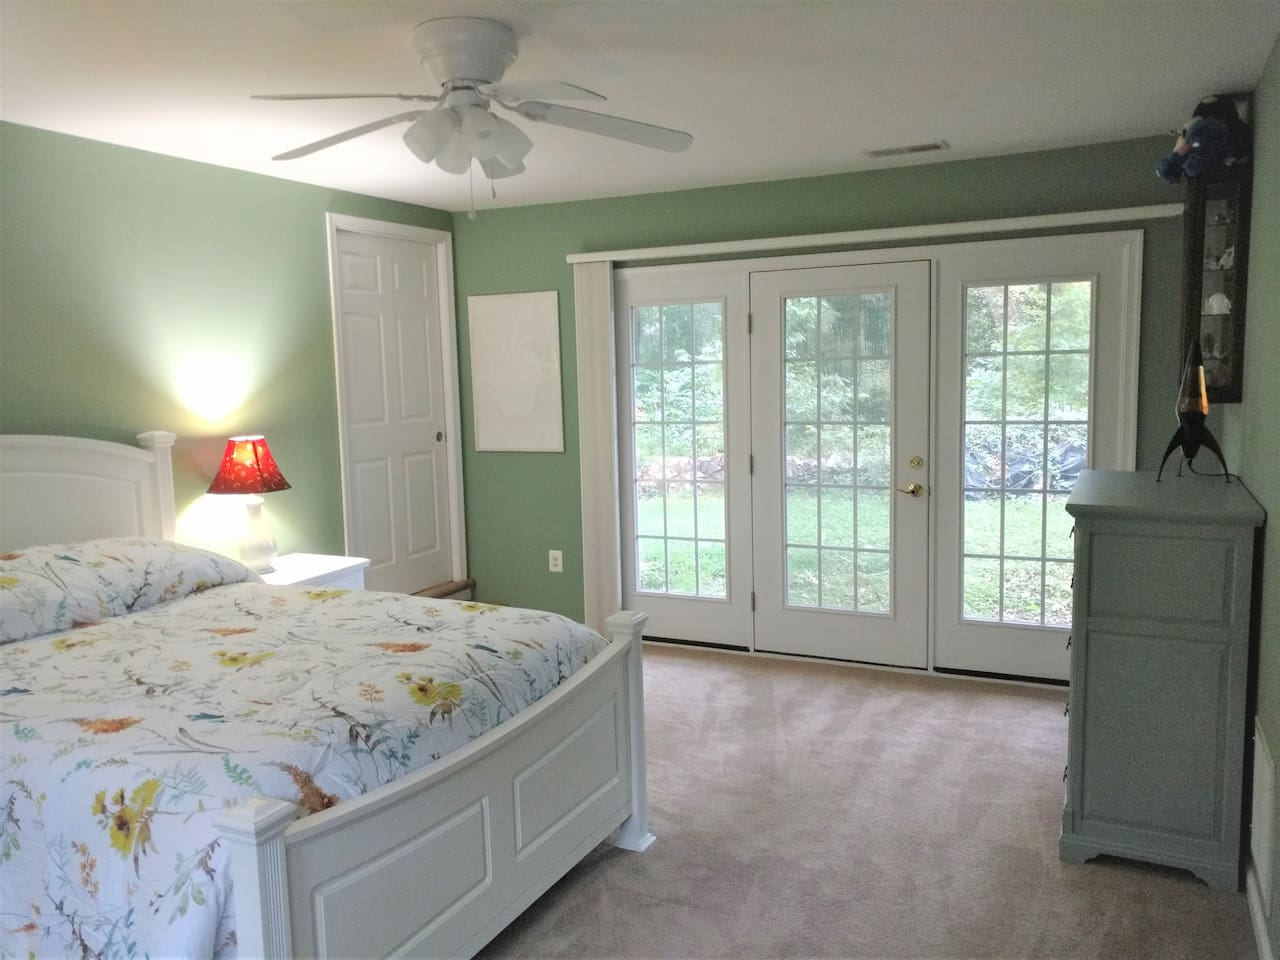 Spacious master bedroom with queen bed. Lots of natural light. Honeycomb shades for both the French doors and the windows on the opposite wall.